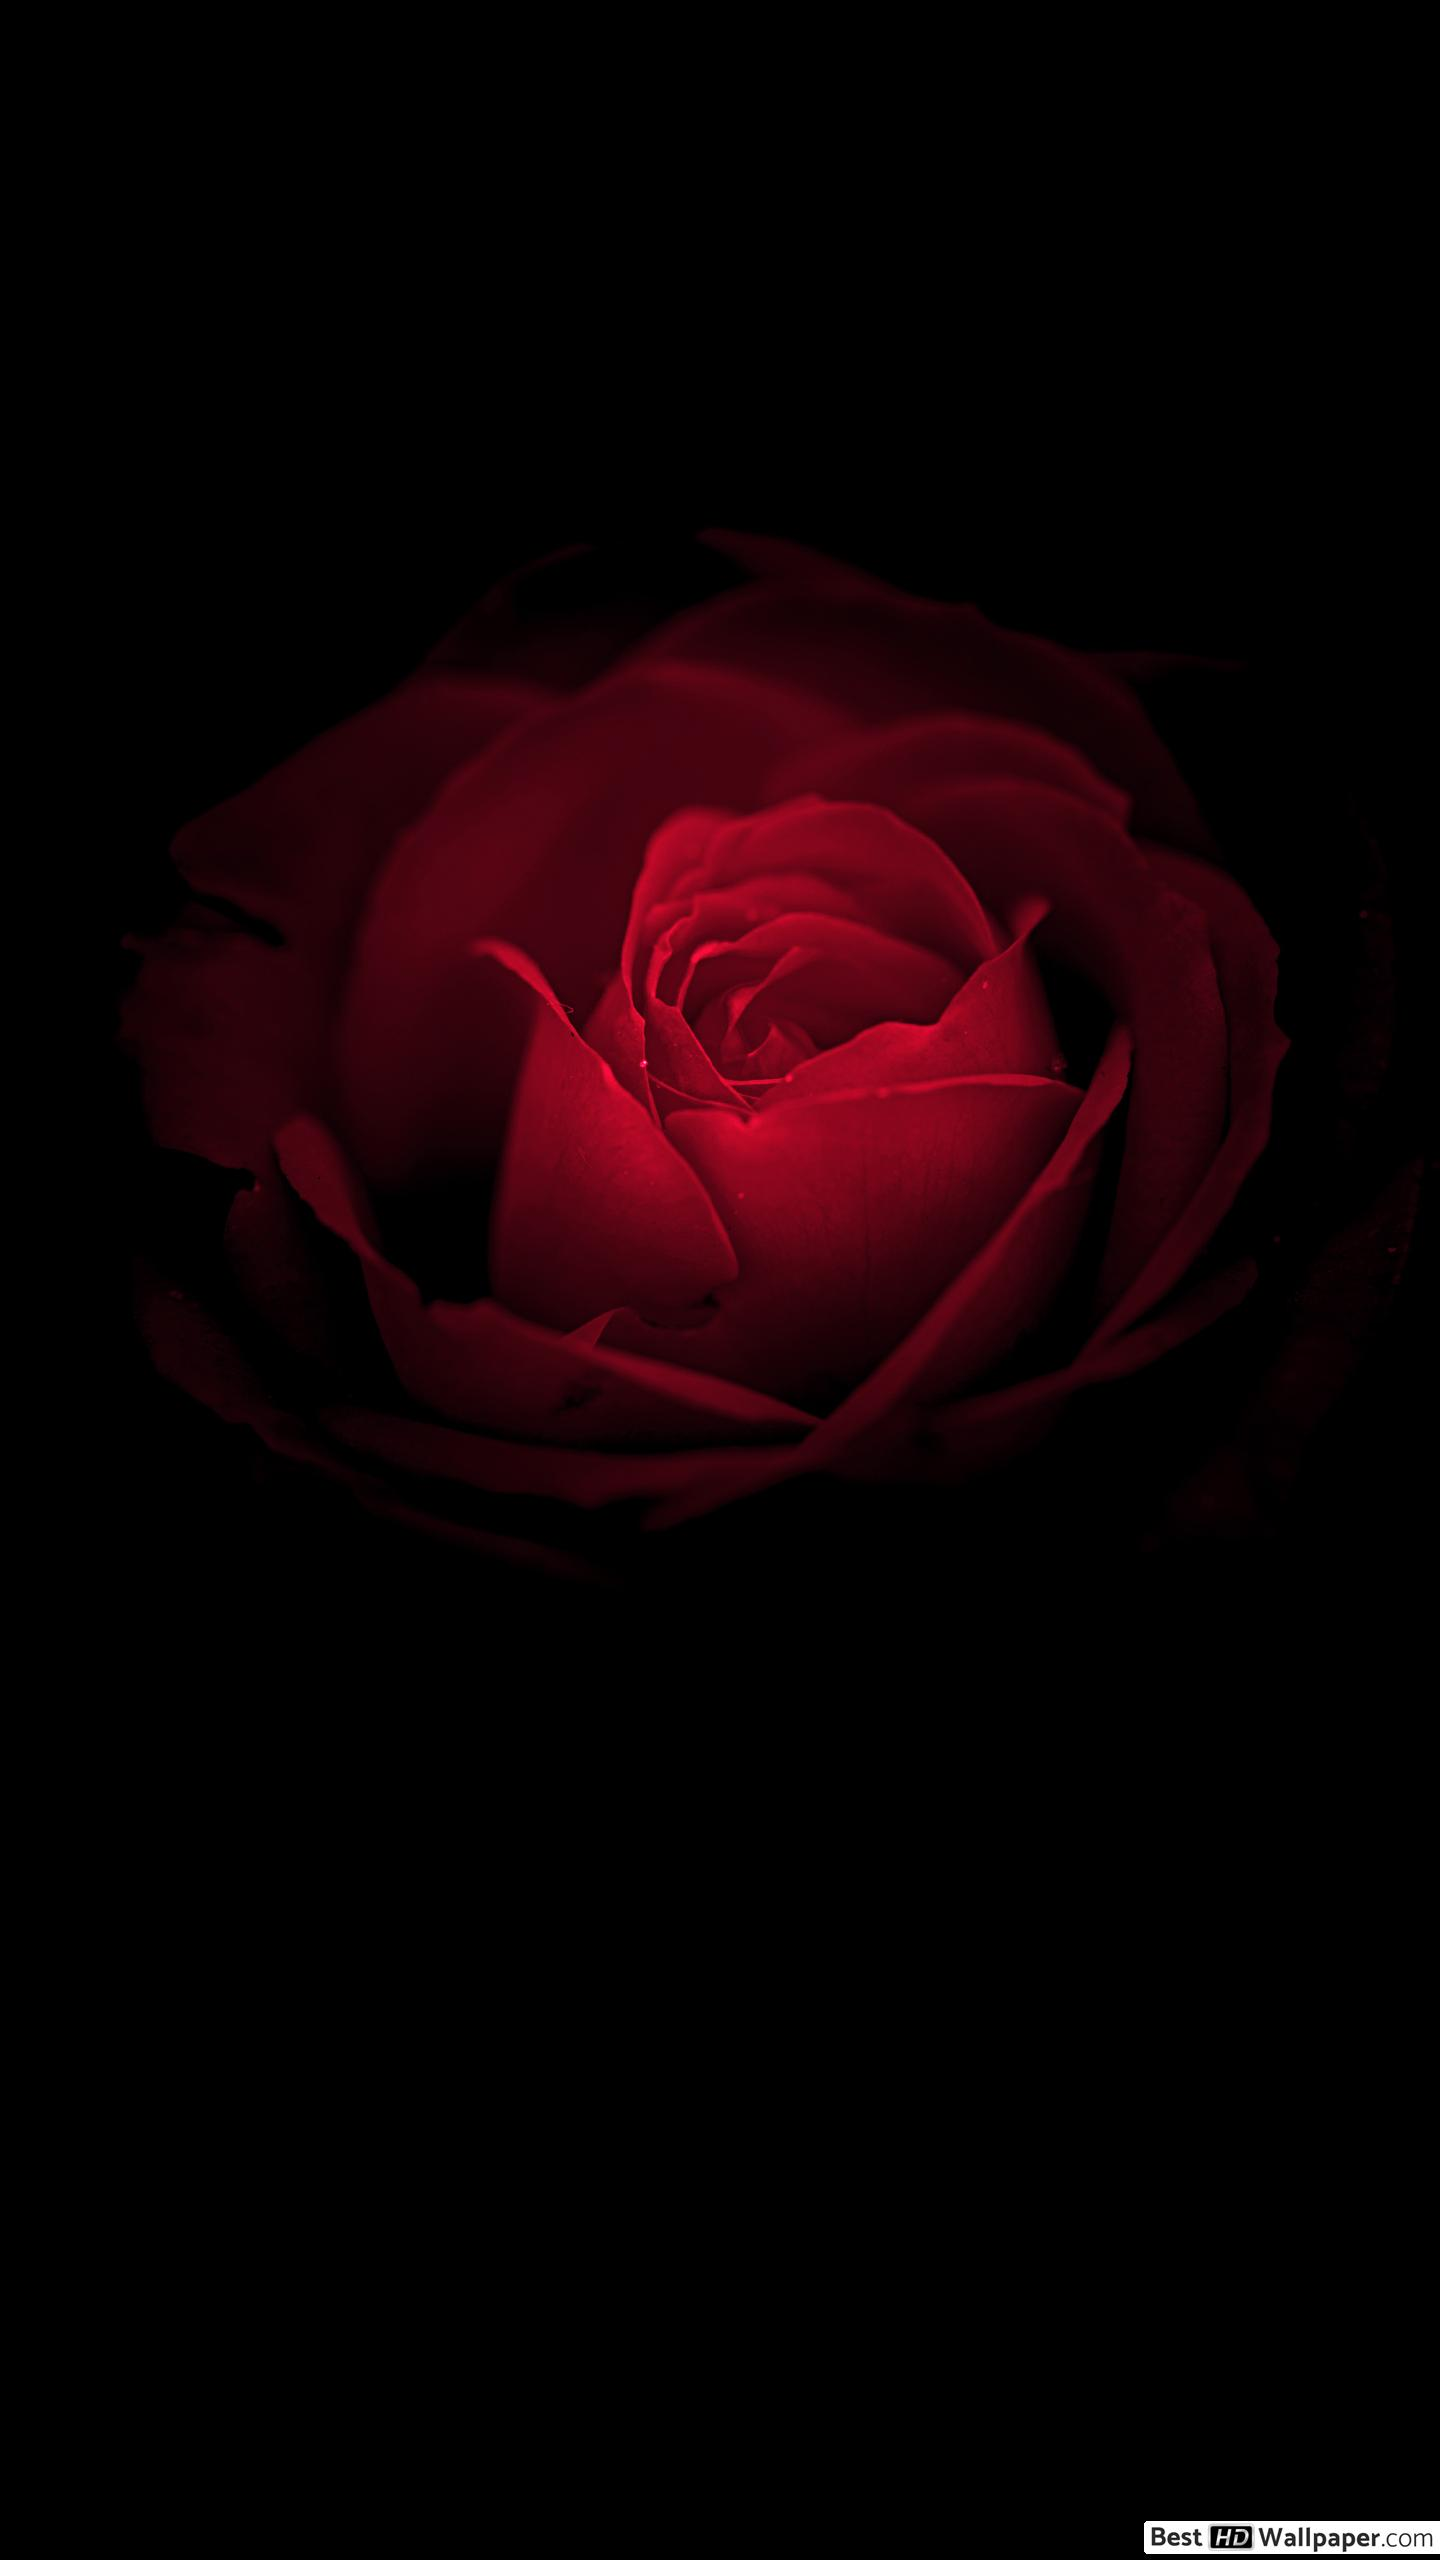 Red Rose Wallpaper Hd Posted By Sarah Walker